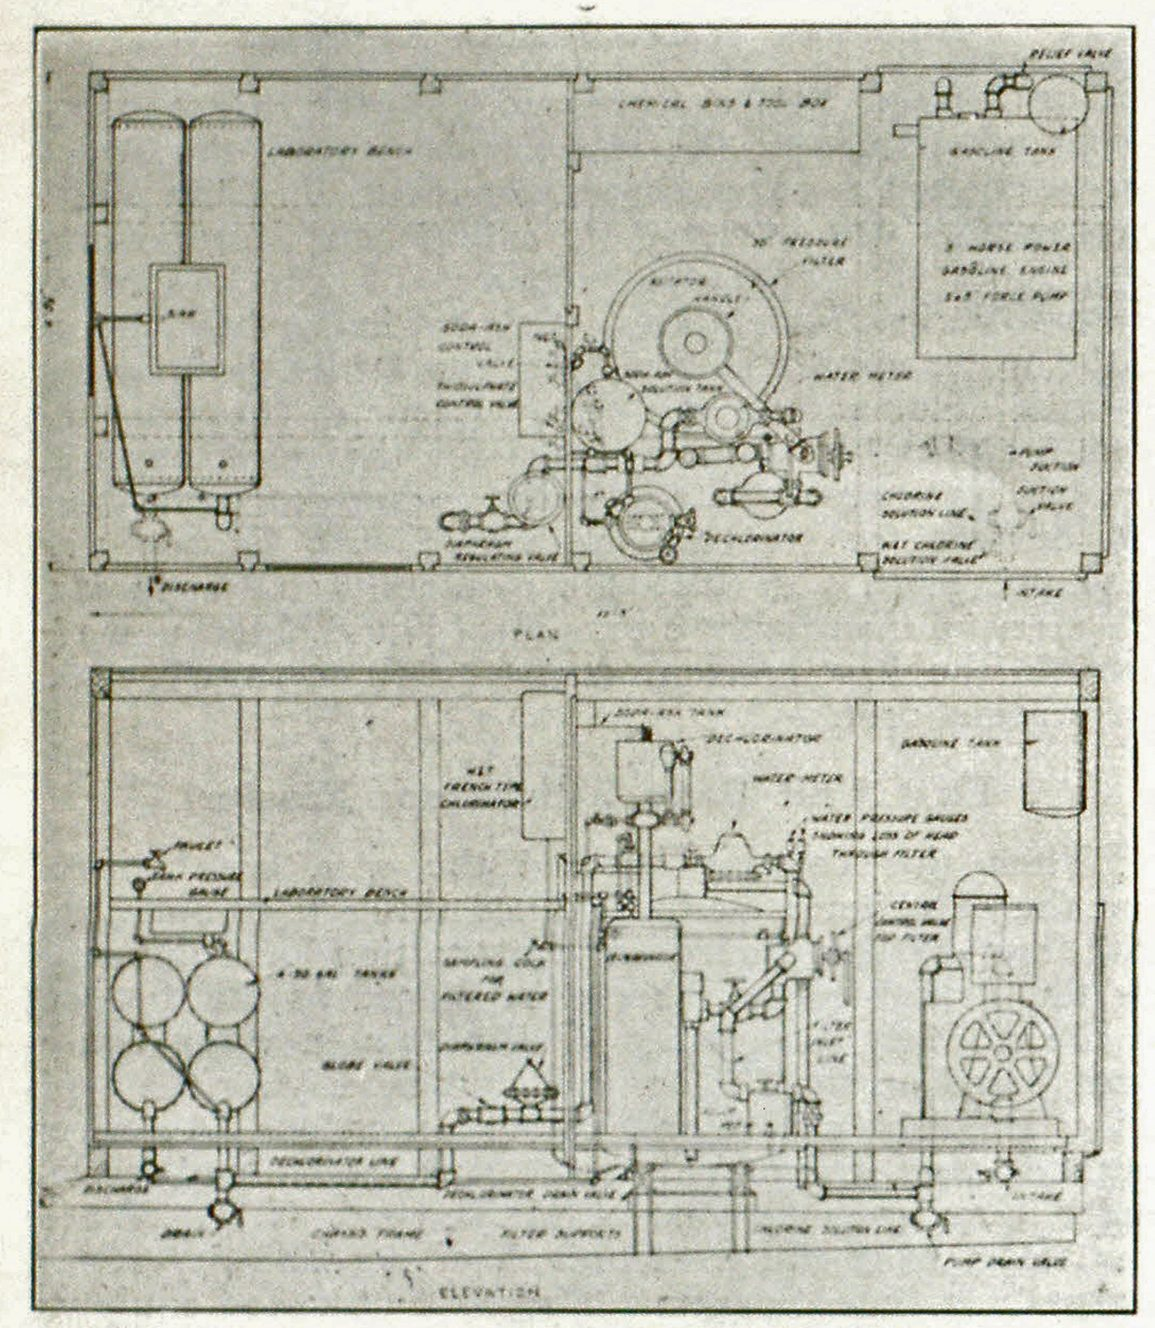 Fig, 1—Plan and Elevation of the Wallace & Tiernan Motor Truck Mounted Water Purification Unit